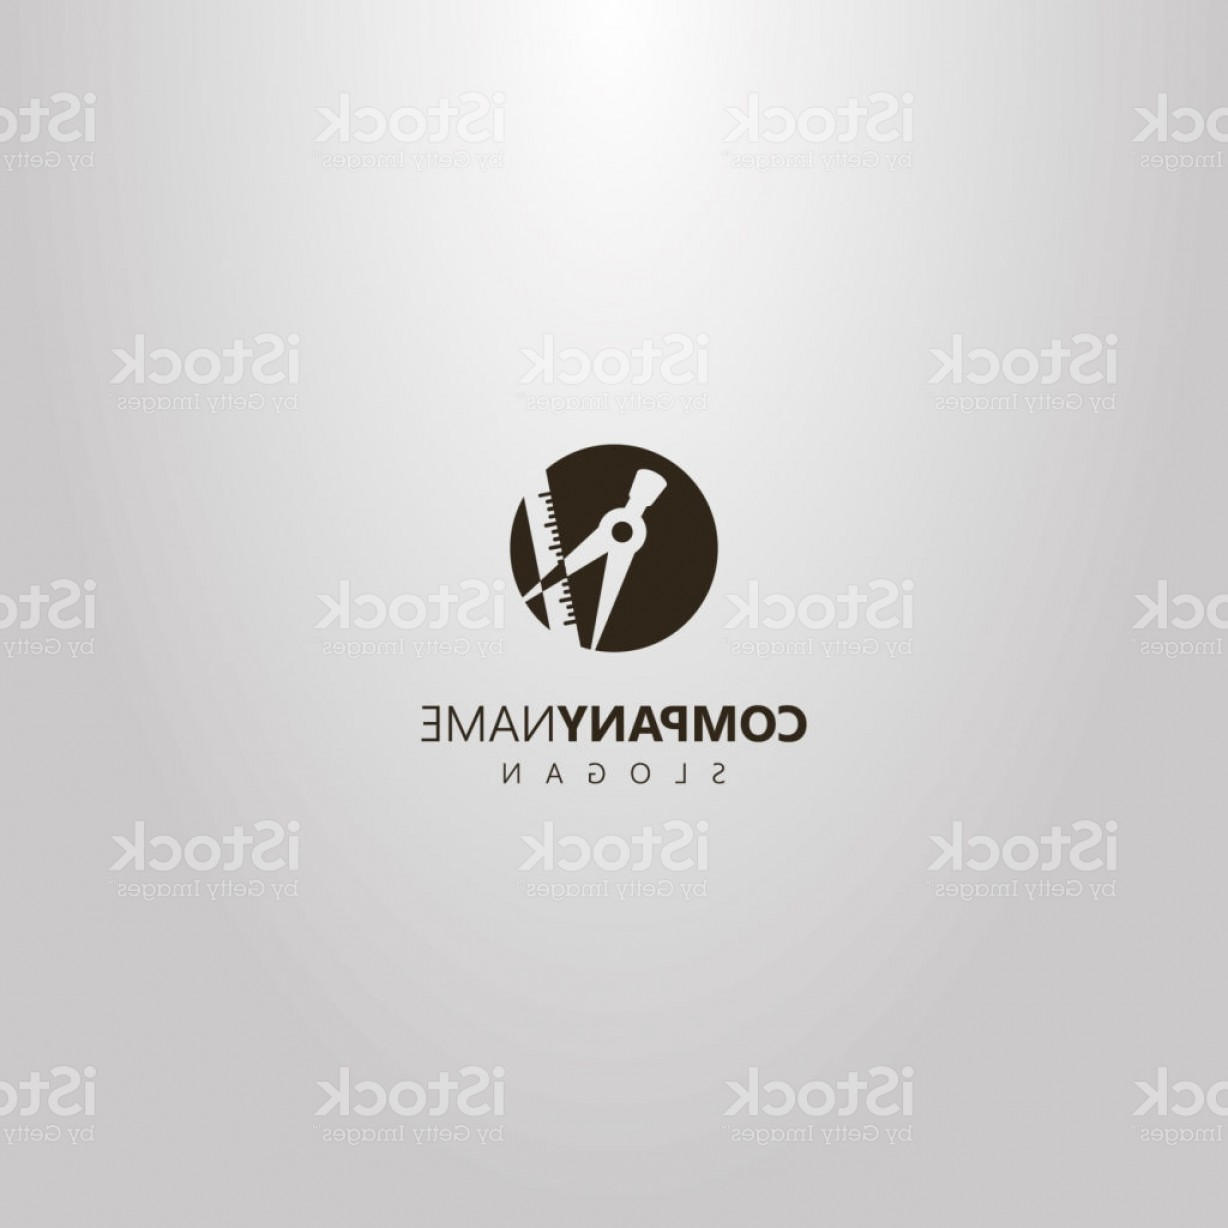 Art Space Logo Vector: Simple Vector Round Negative Space Logo Of Dividers And Ruler Gm